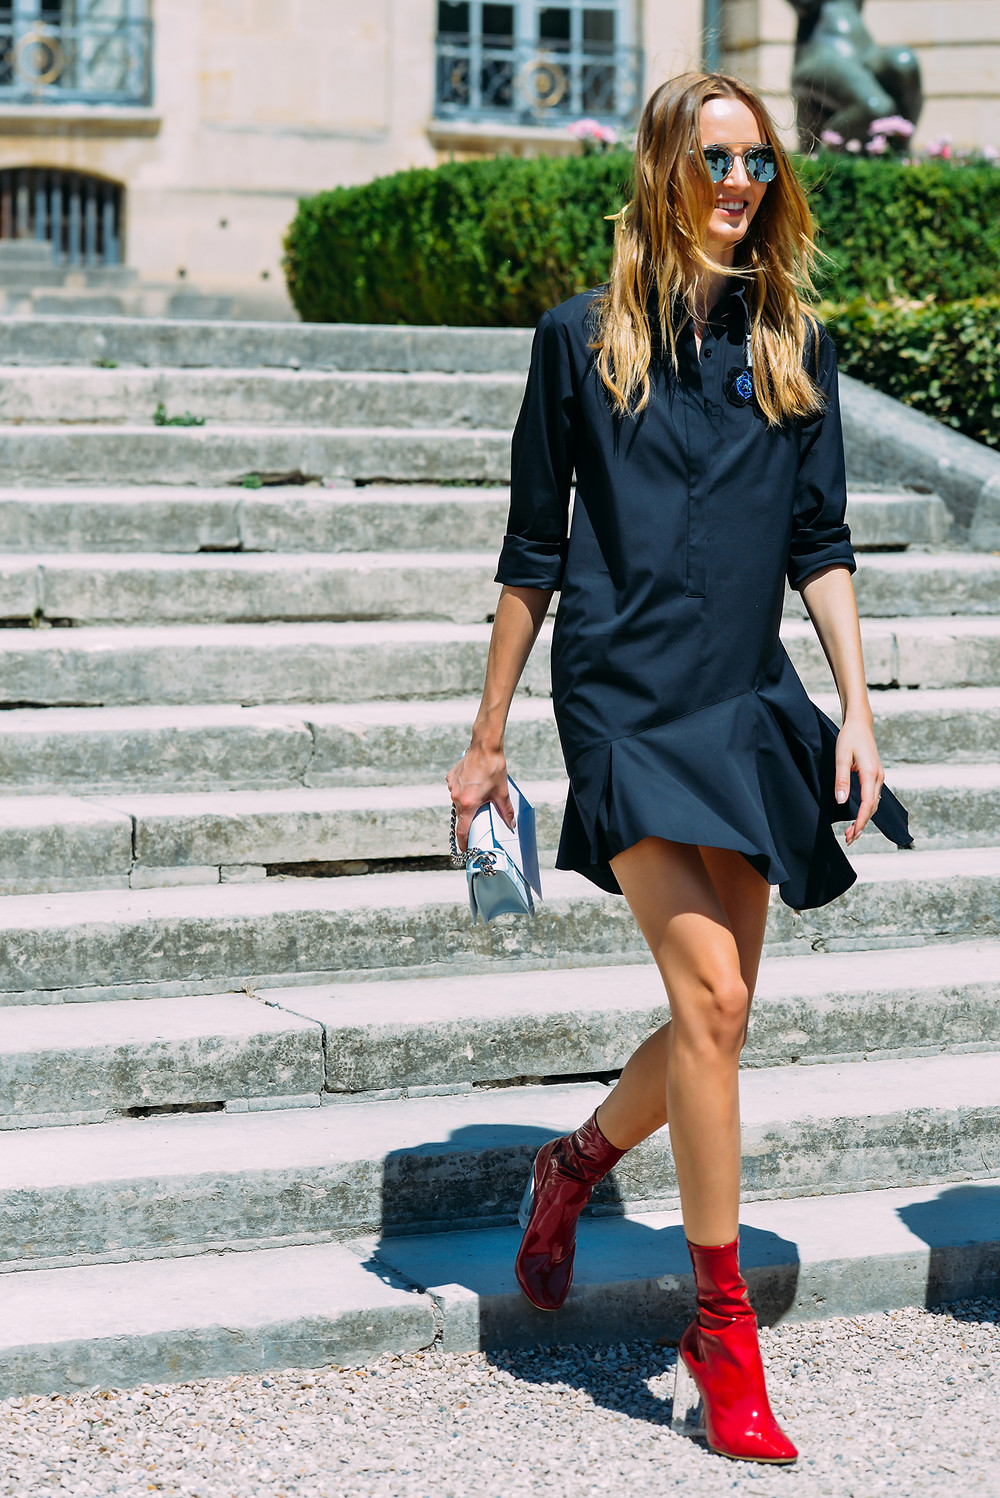 09-fall-2015-couture-street-style-12.jpg